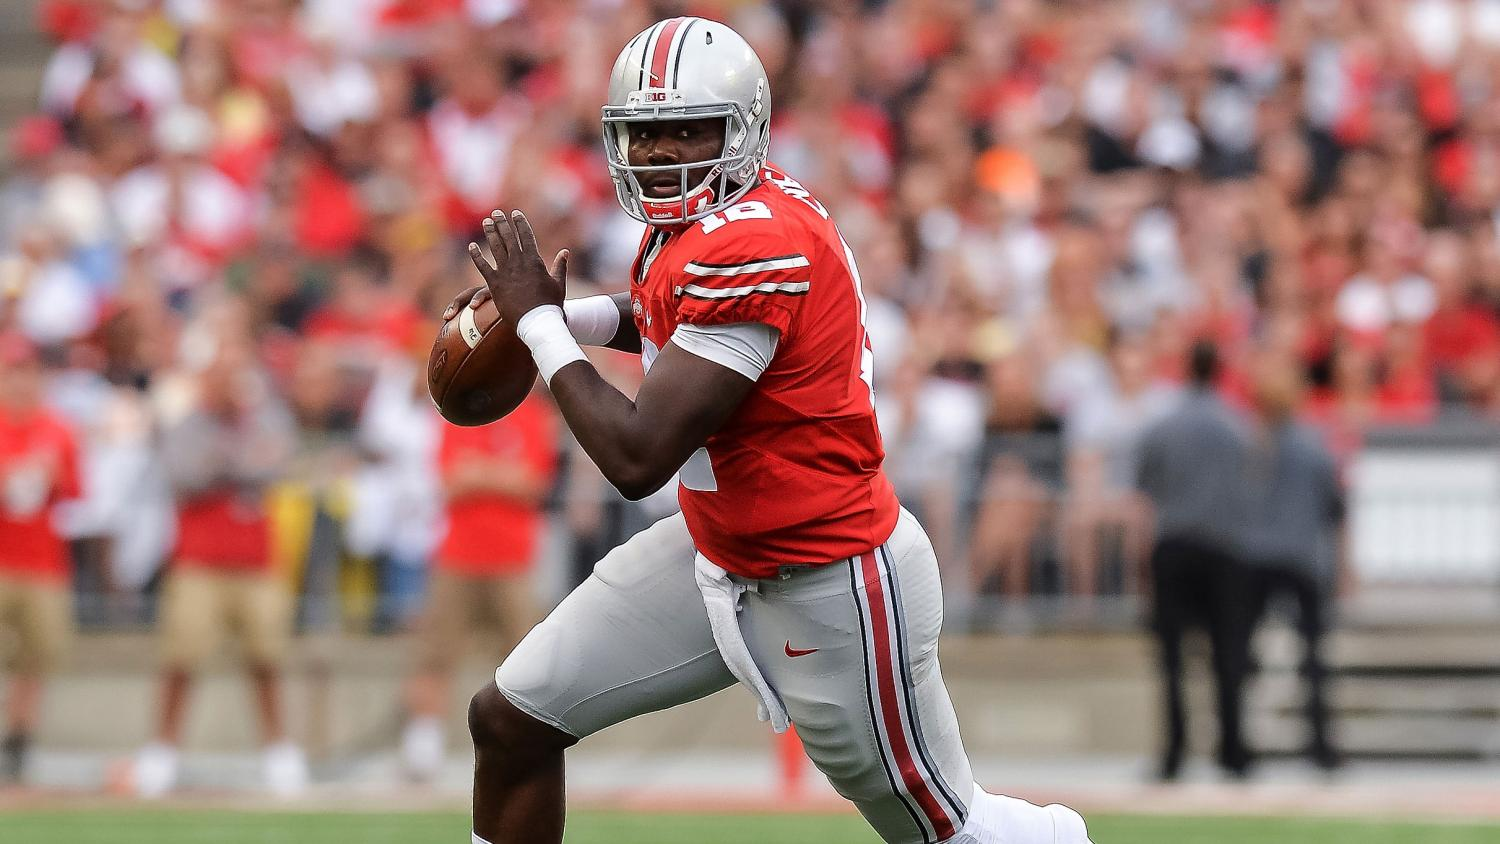 Cardale-jones-buffalo-bills-nfl-draft